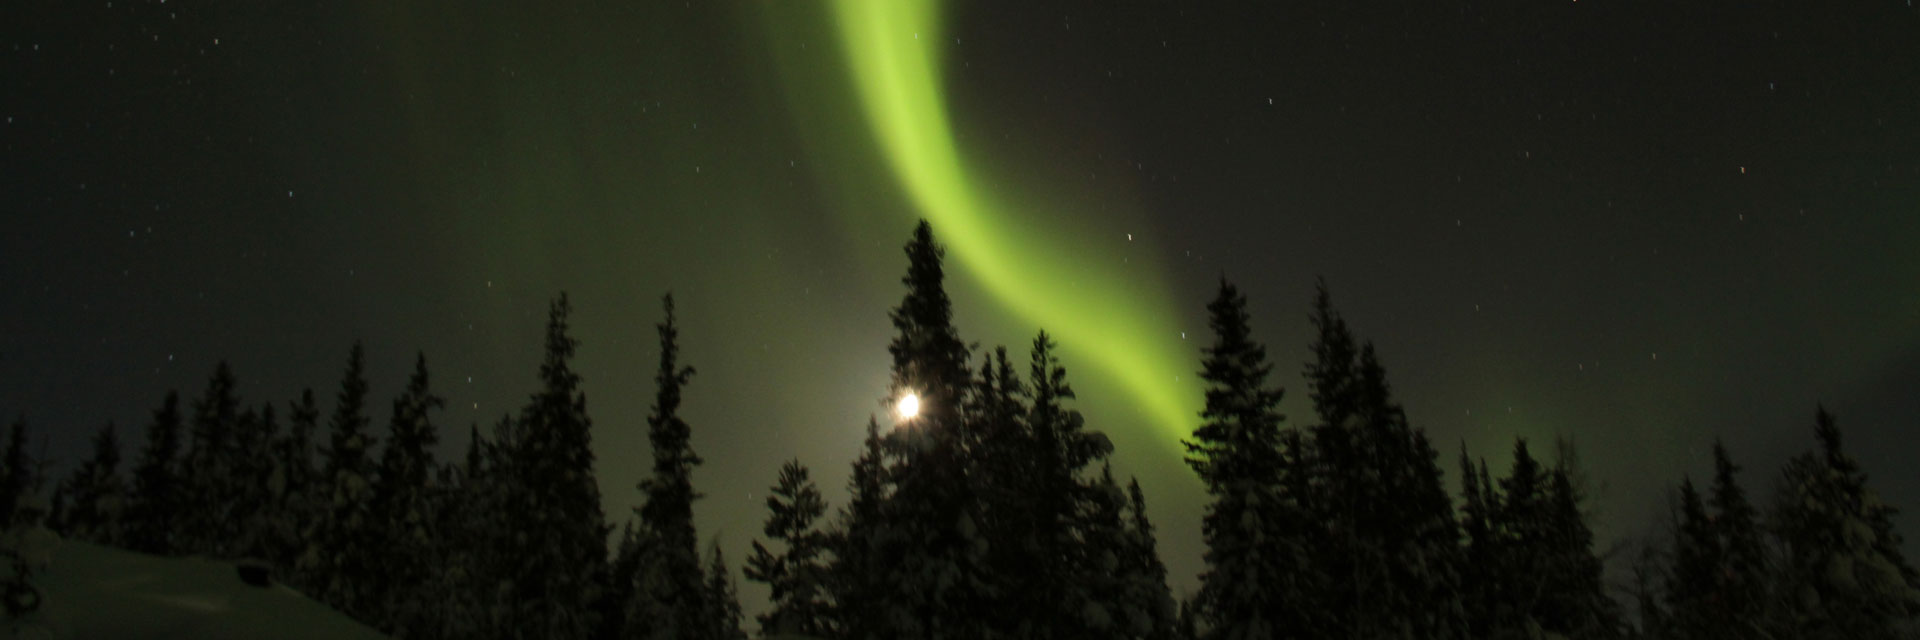 Aurora Lodge Escape in Lapland